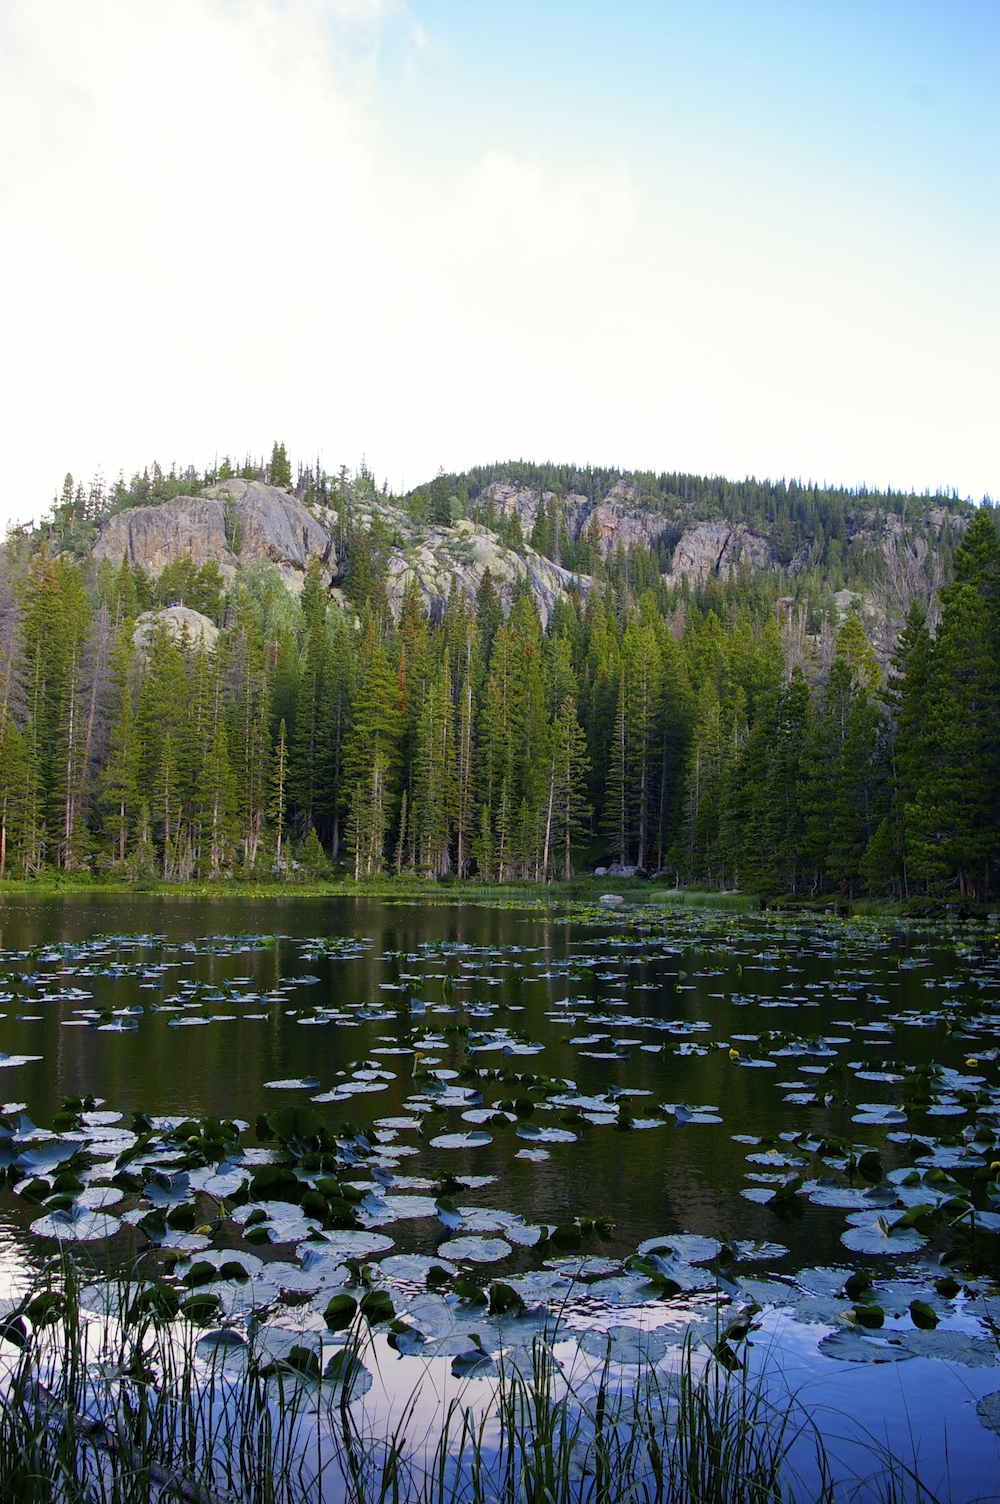 Nymph Lake in Rocky Mountain National Park in Estes Park, Colorado